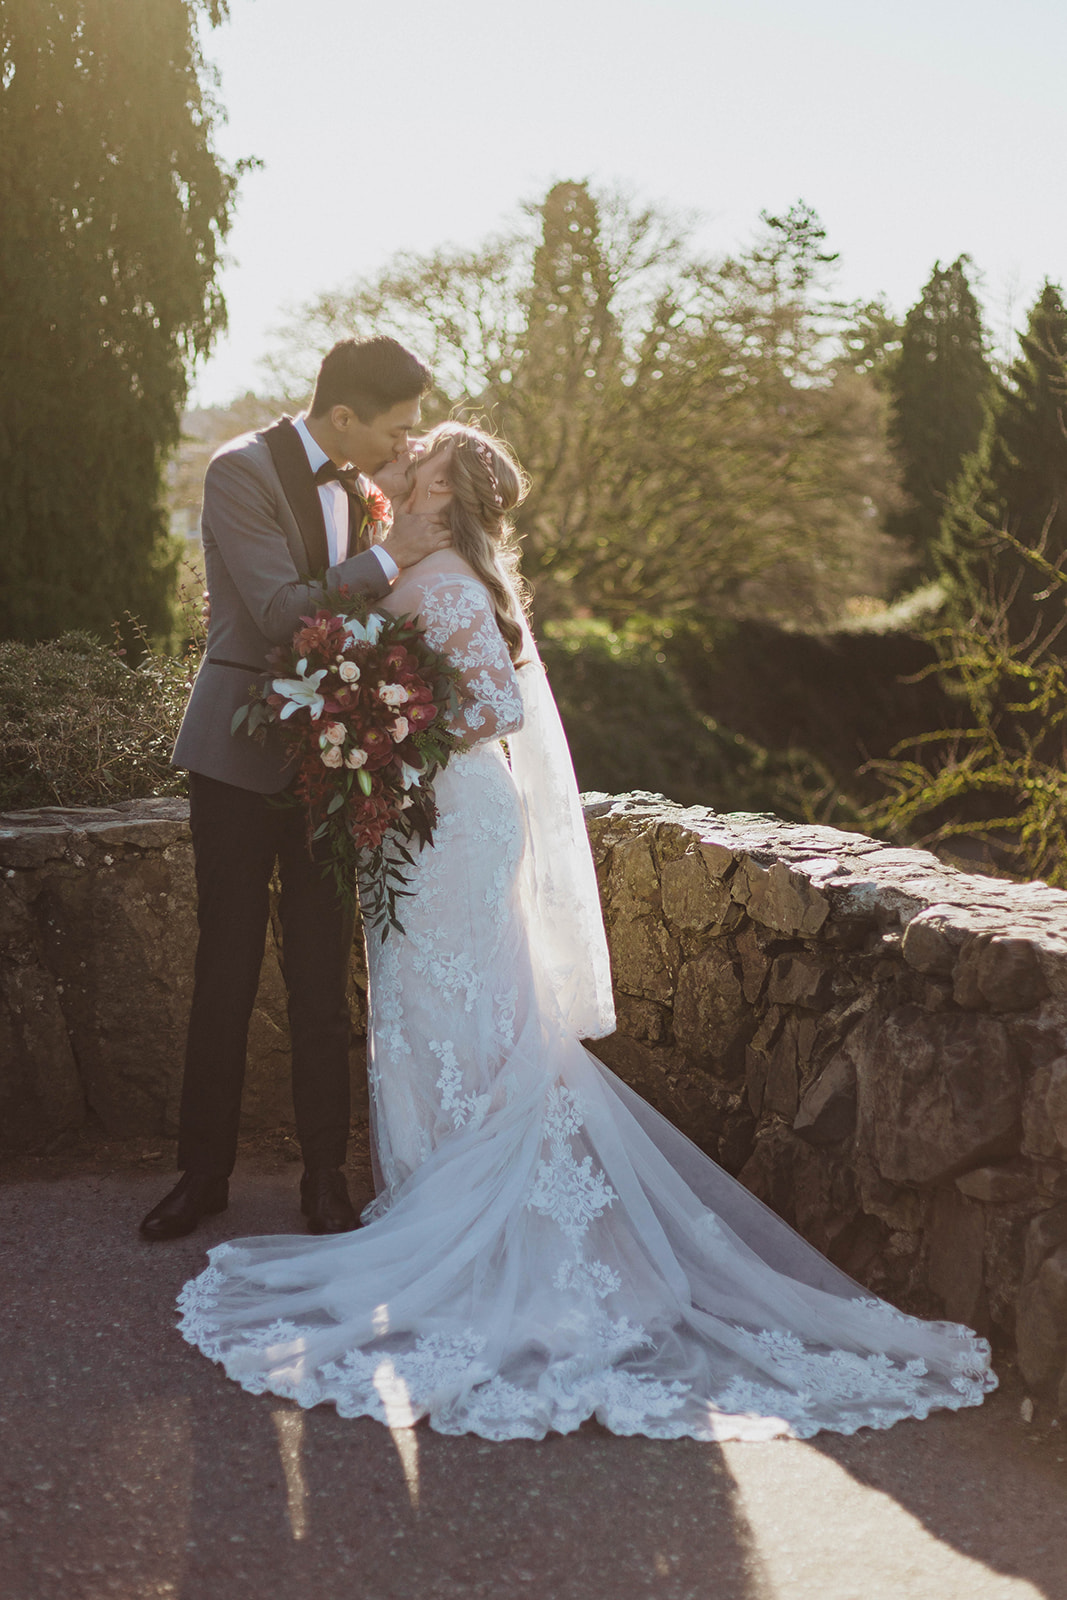 Newlyweds kiss in the sunset with bride wearing lace gown with train and veil by Blush Bridal Victoria